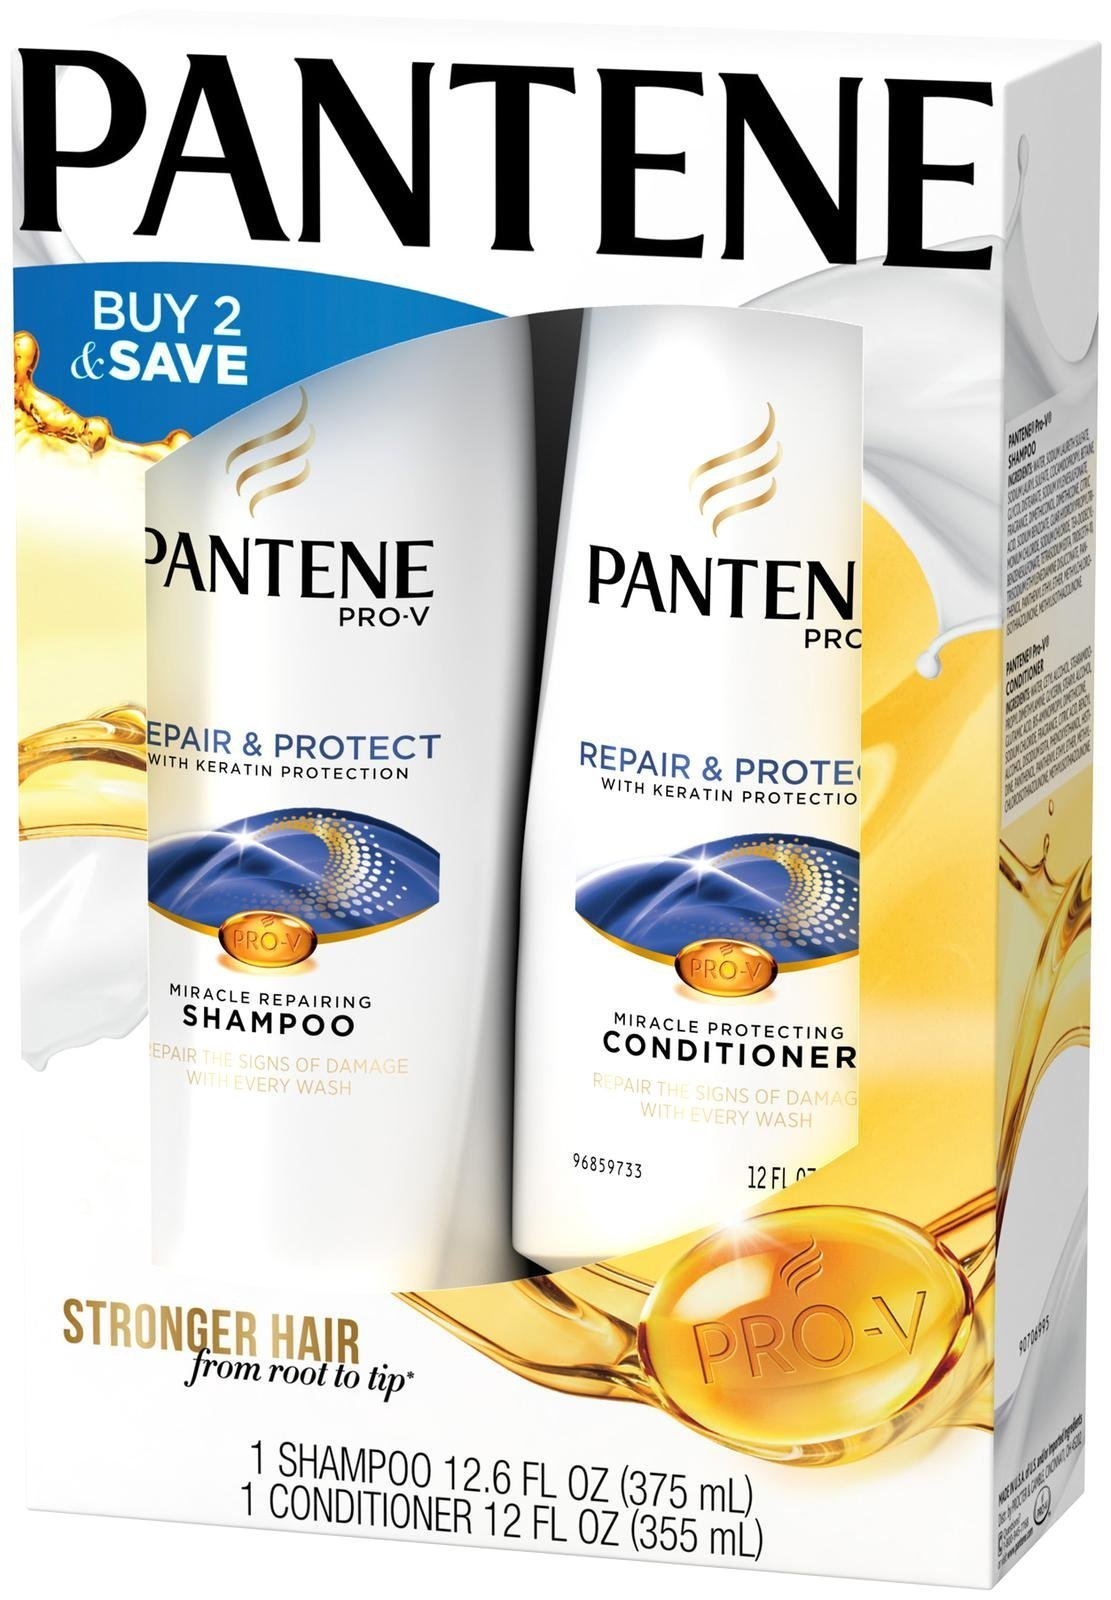 Pantene Pro V Repair and Protect w/ Keratin Shampoo (12.6 Oz) + Conditioner (12 Oz) by Pantene